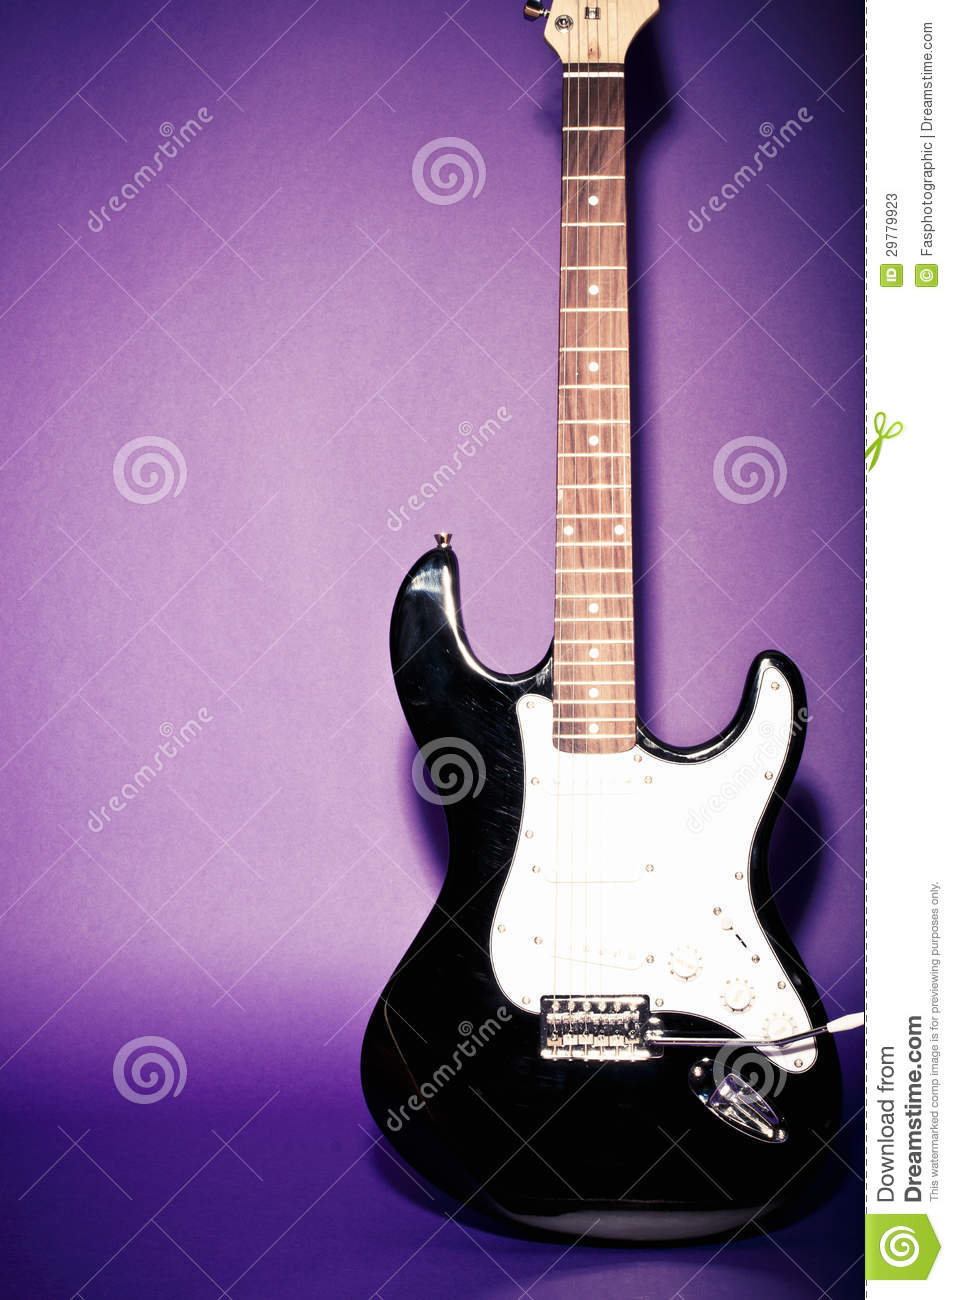 Retro Look Electric Guitar Stock Photos - Image: 29779923